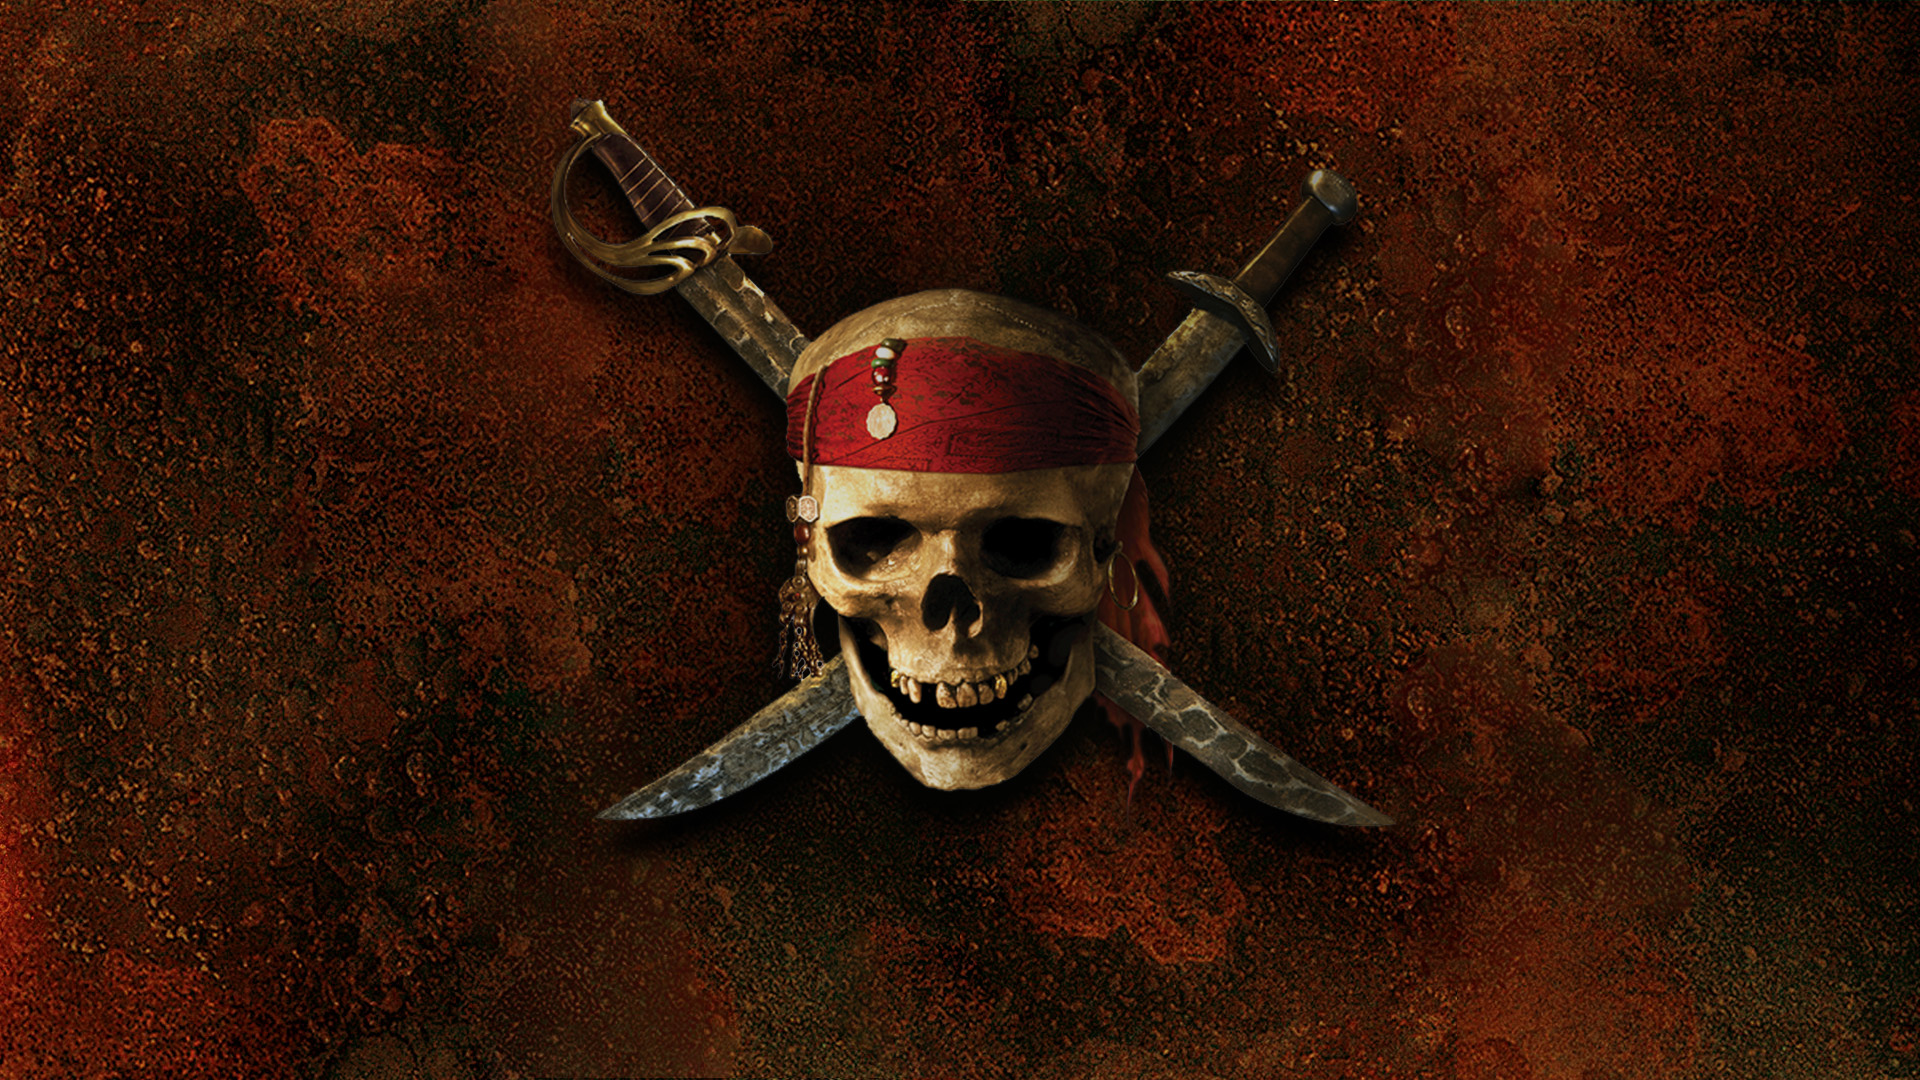 Pirates Of The Caribean Wallpaper: 70 Pirates Of The Caribbean: The Curse Of The Black Pearl